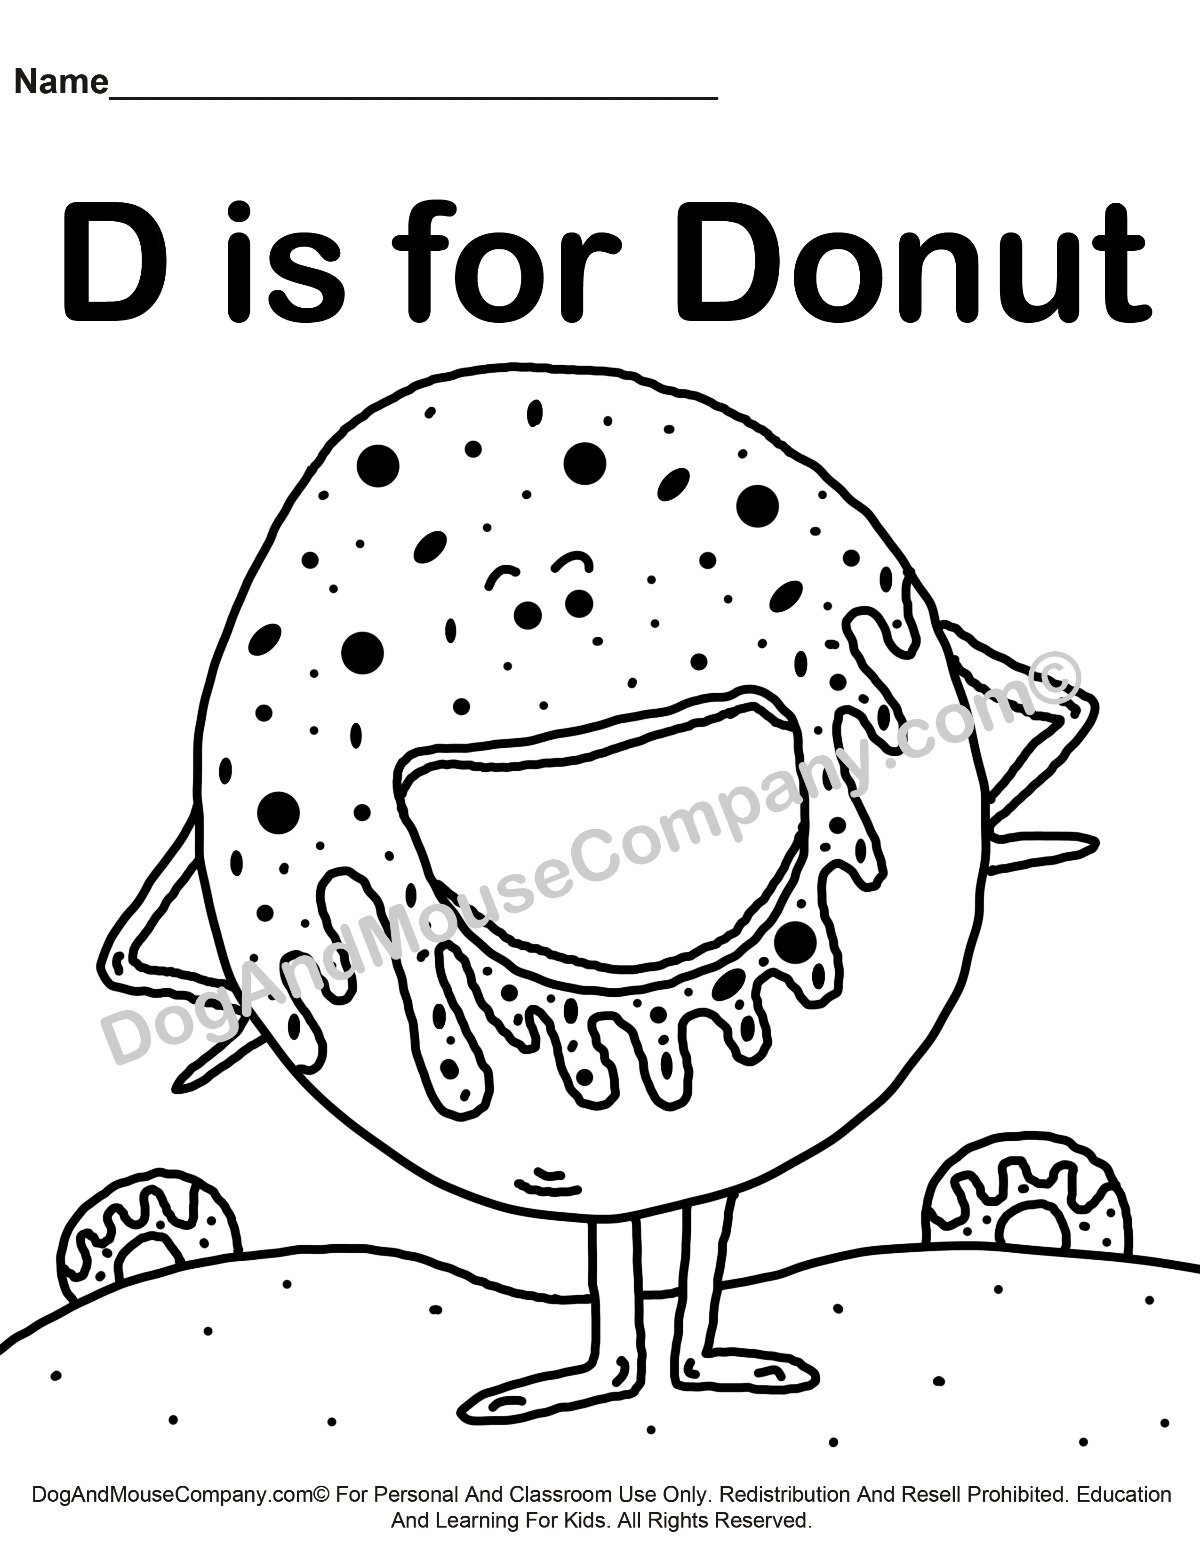 d for dog coloring page d is for donut coloring page learn your abc39s for d coloring page dog